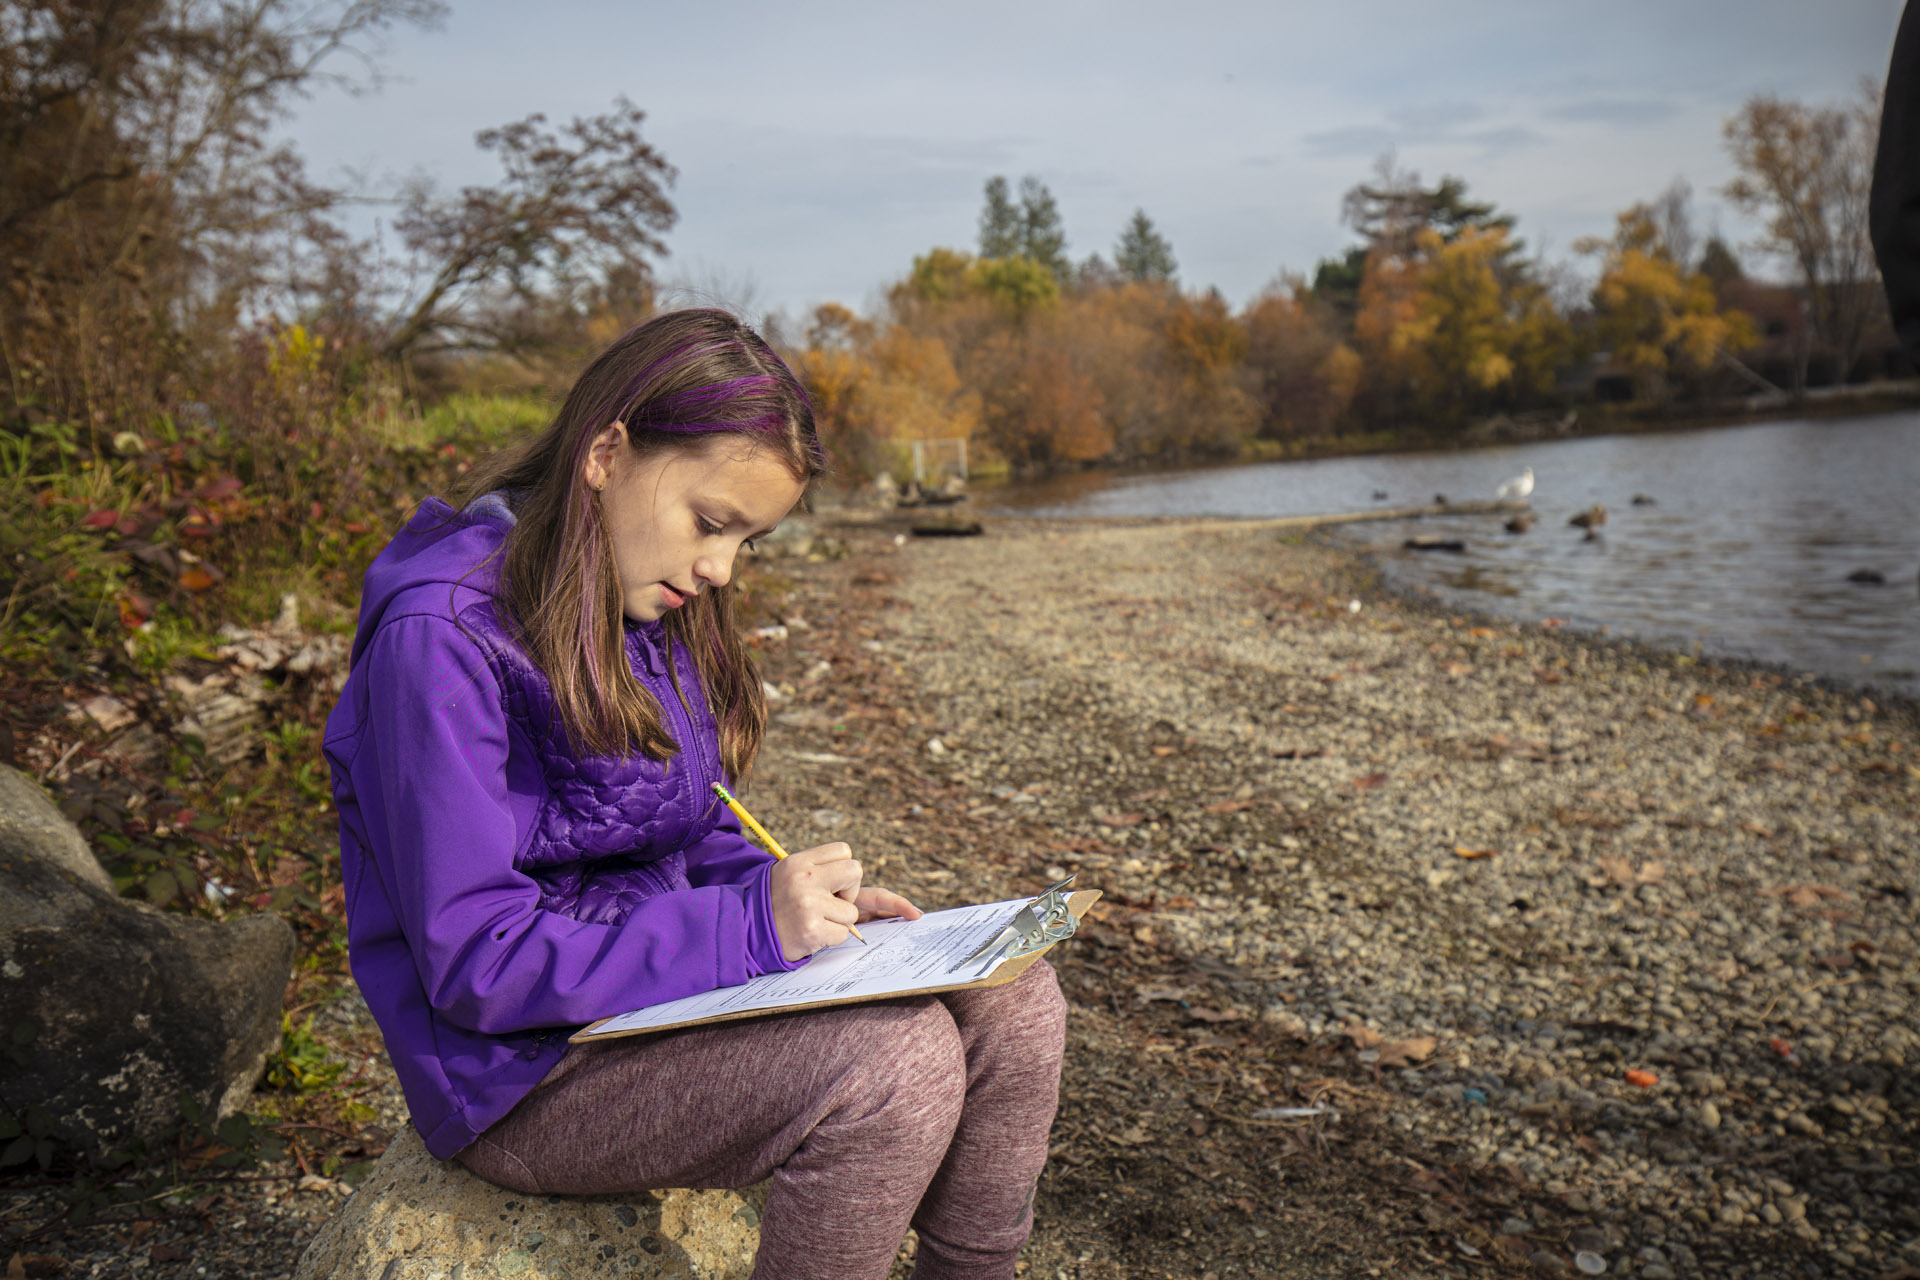 [image description: student making scientific observations while sitting next to a body of water.]